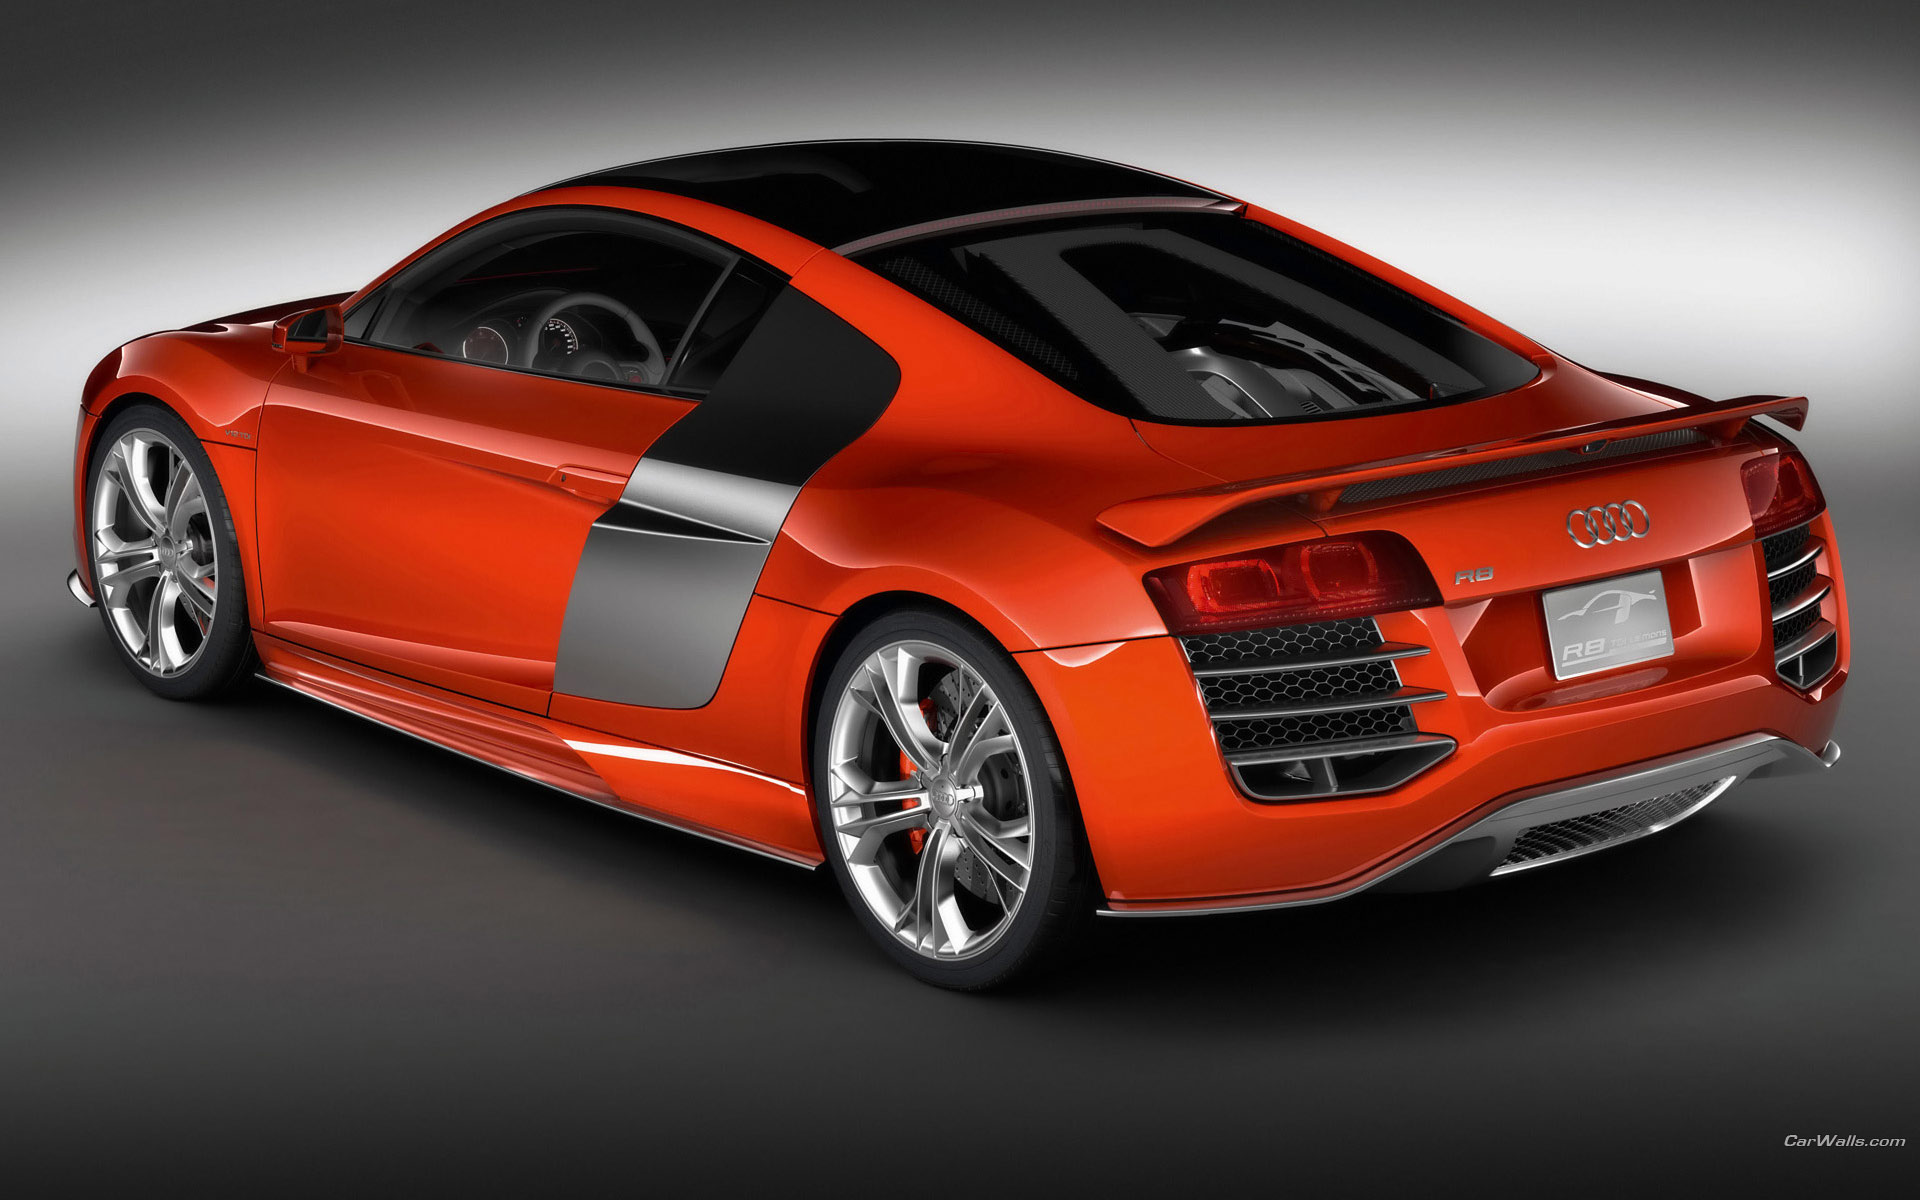 Audi R8 Wallpapers - Full HD wallpaper search - page 15